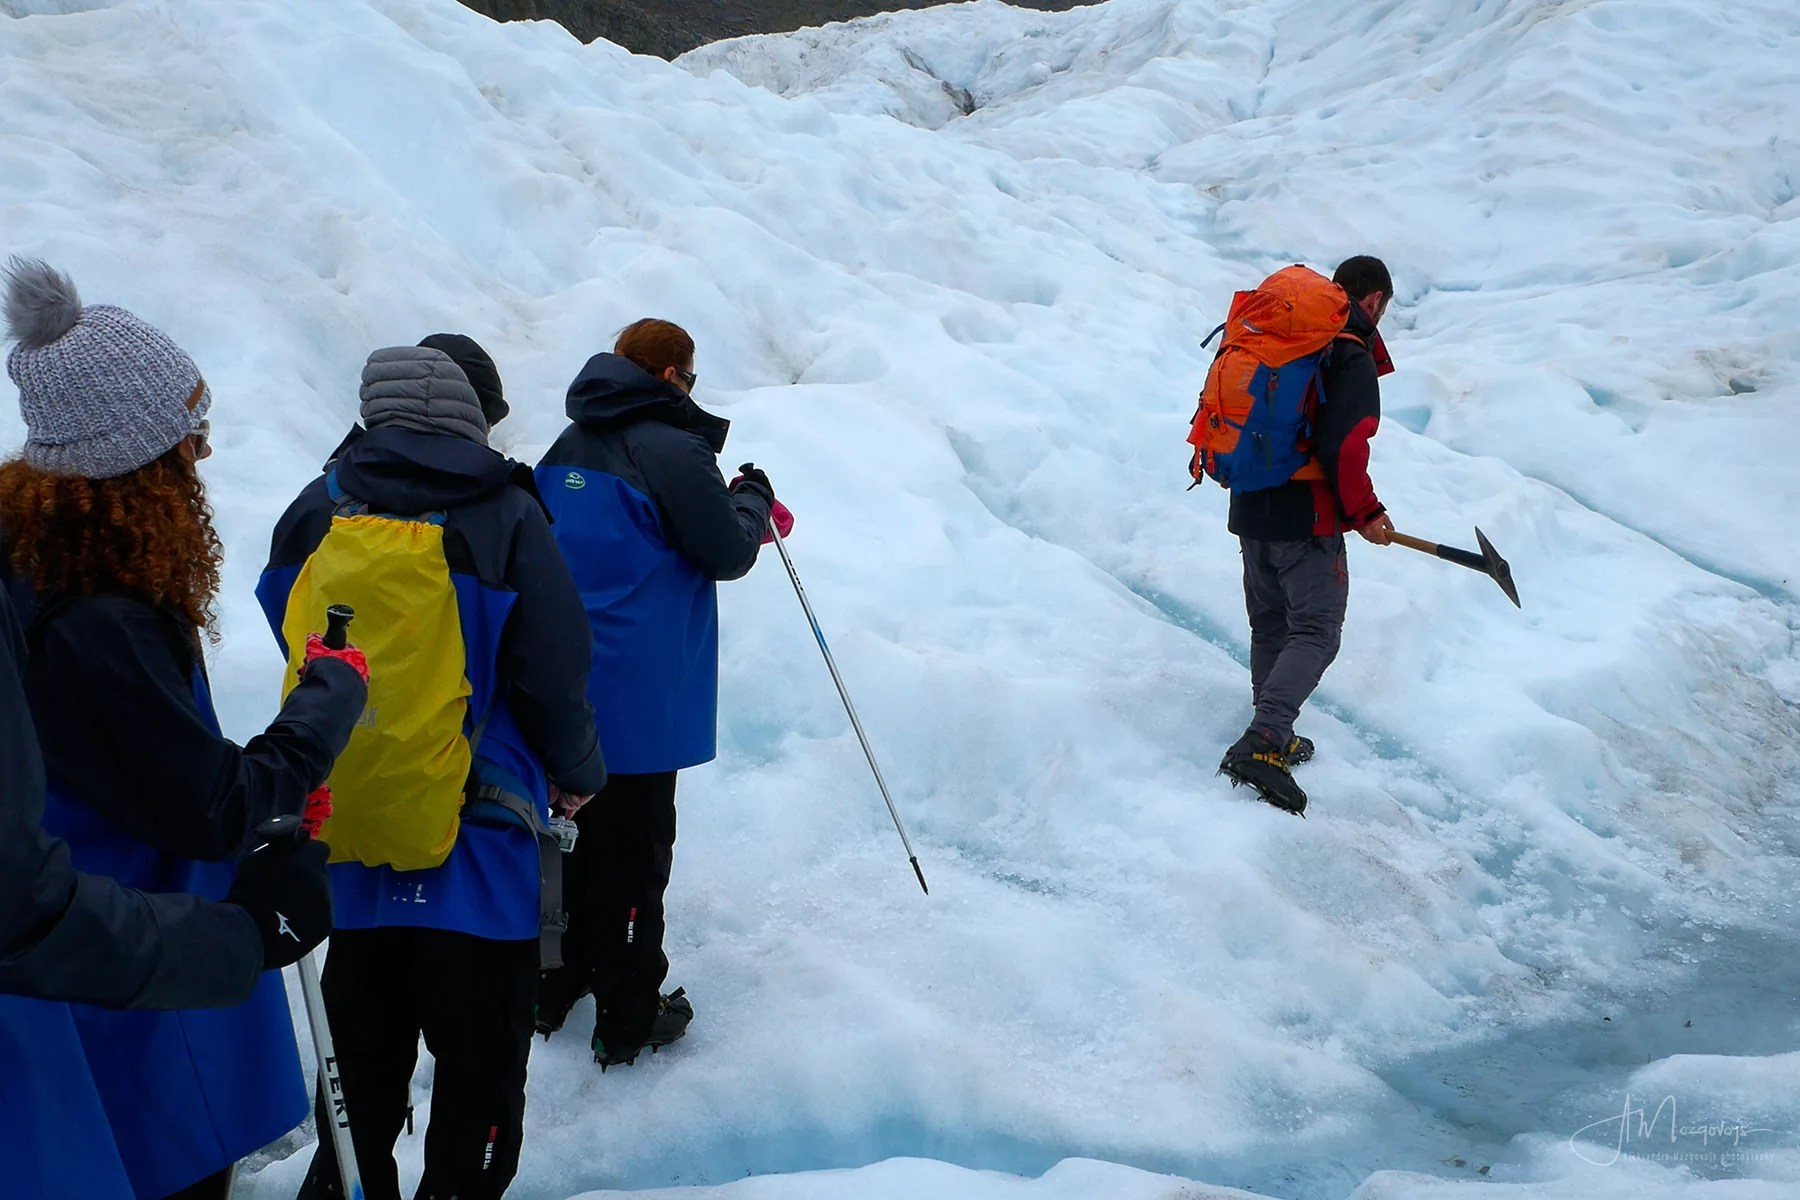 Everyone lining up behind the guide at Fox Glacier hell hike